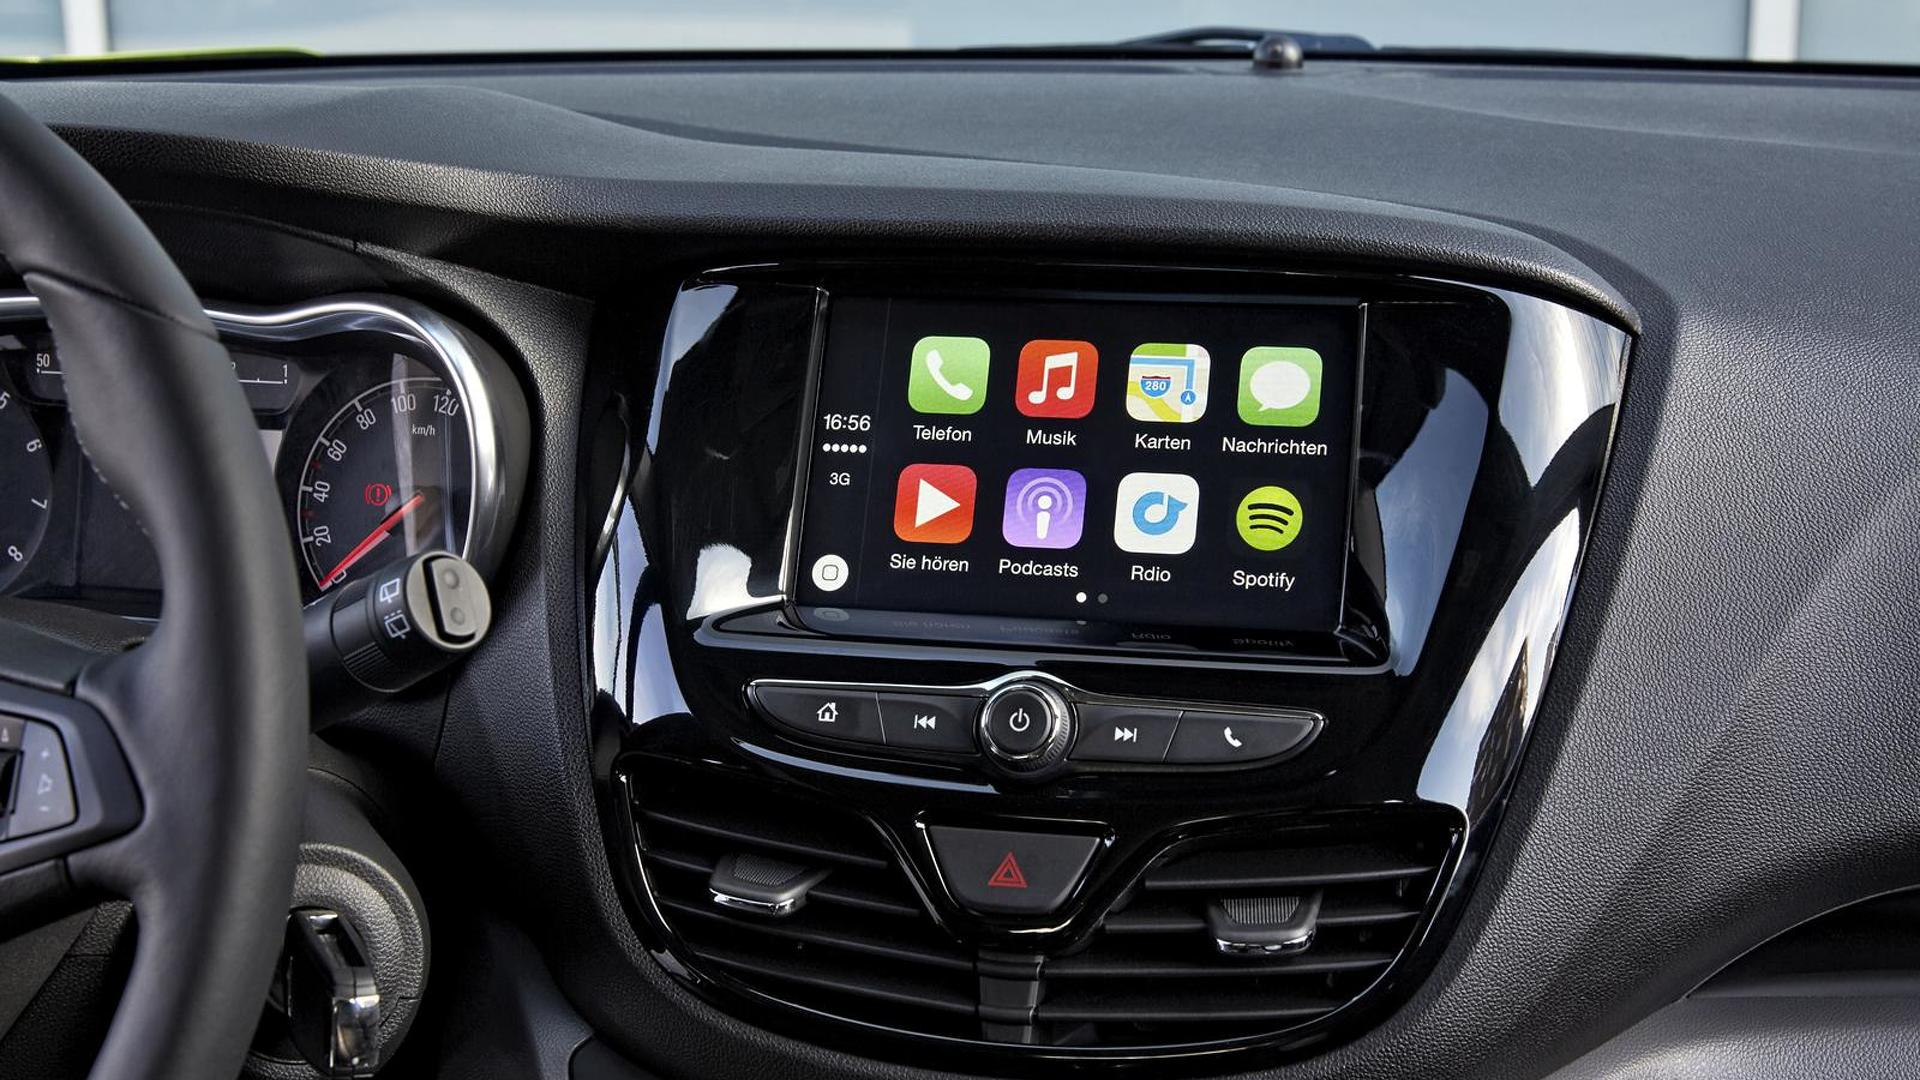 Android Auto and Apple CarPlay coming to select Opel models